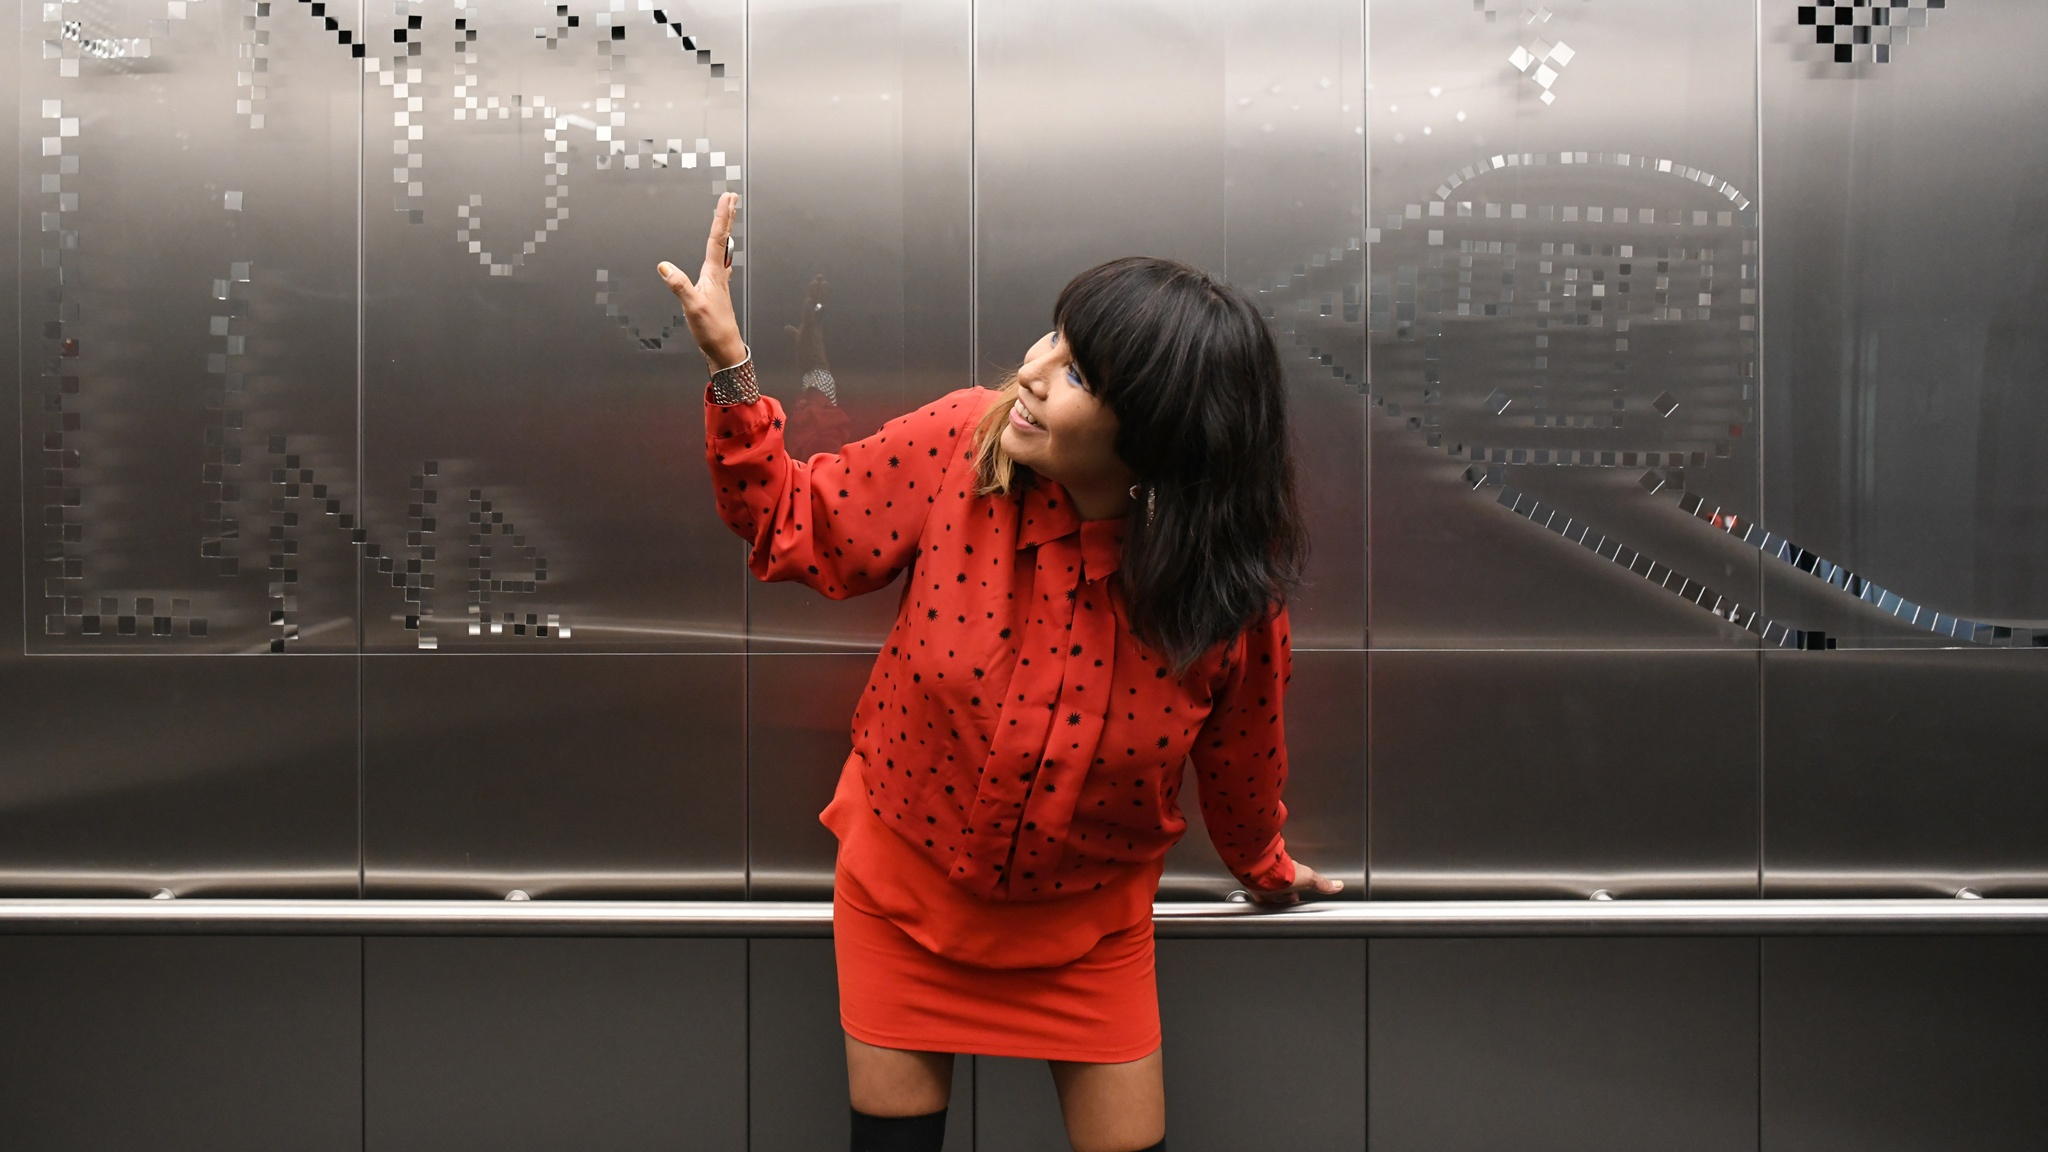 A woman wearing a red dress gestures to a pattern on the wall of an elevator behind her.